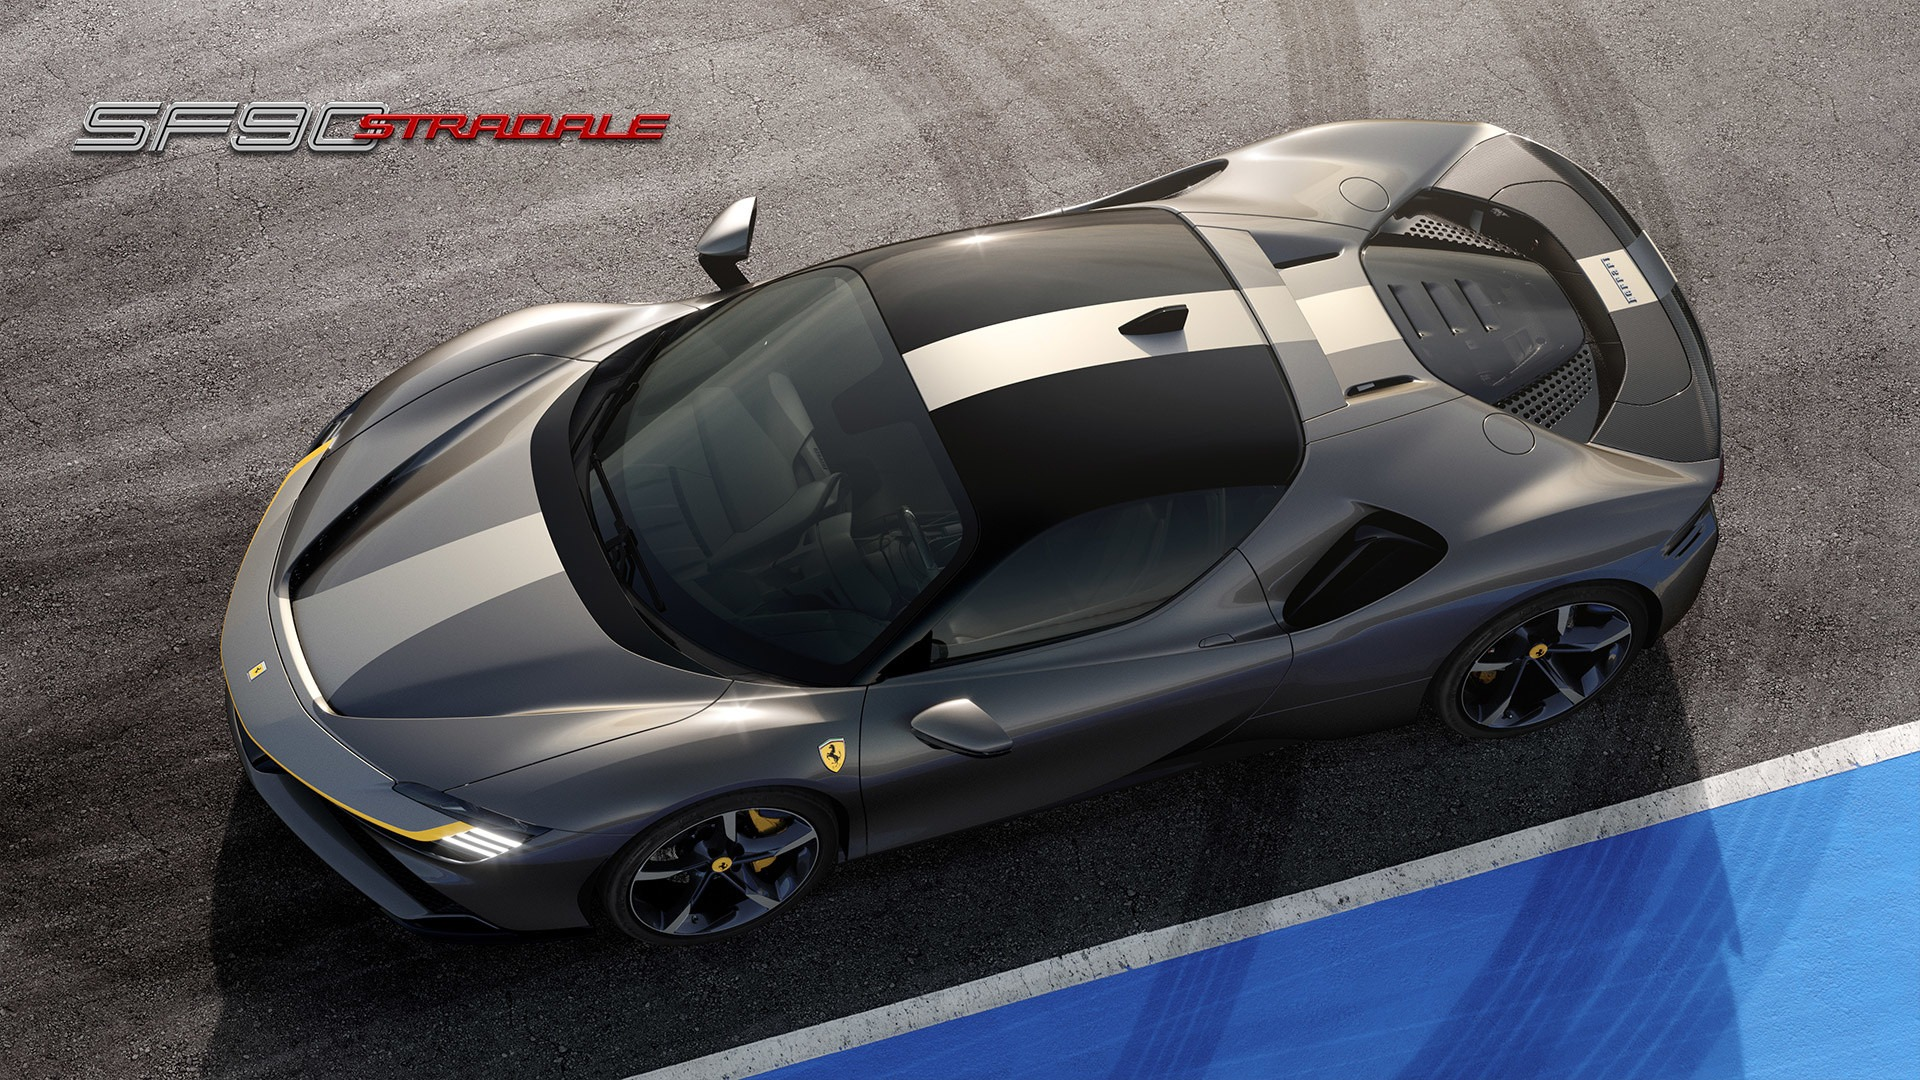 New 2021 Ferrari Sf90 Stradale For Sale Special Pricing Mclaren Greenwich Stock Xxx00012